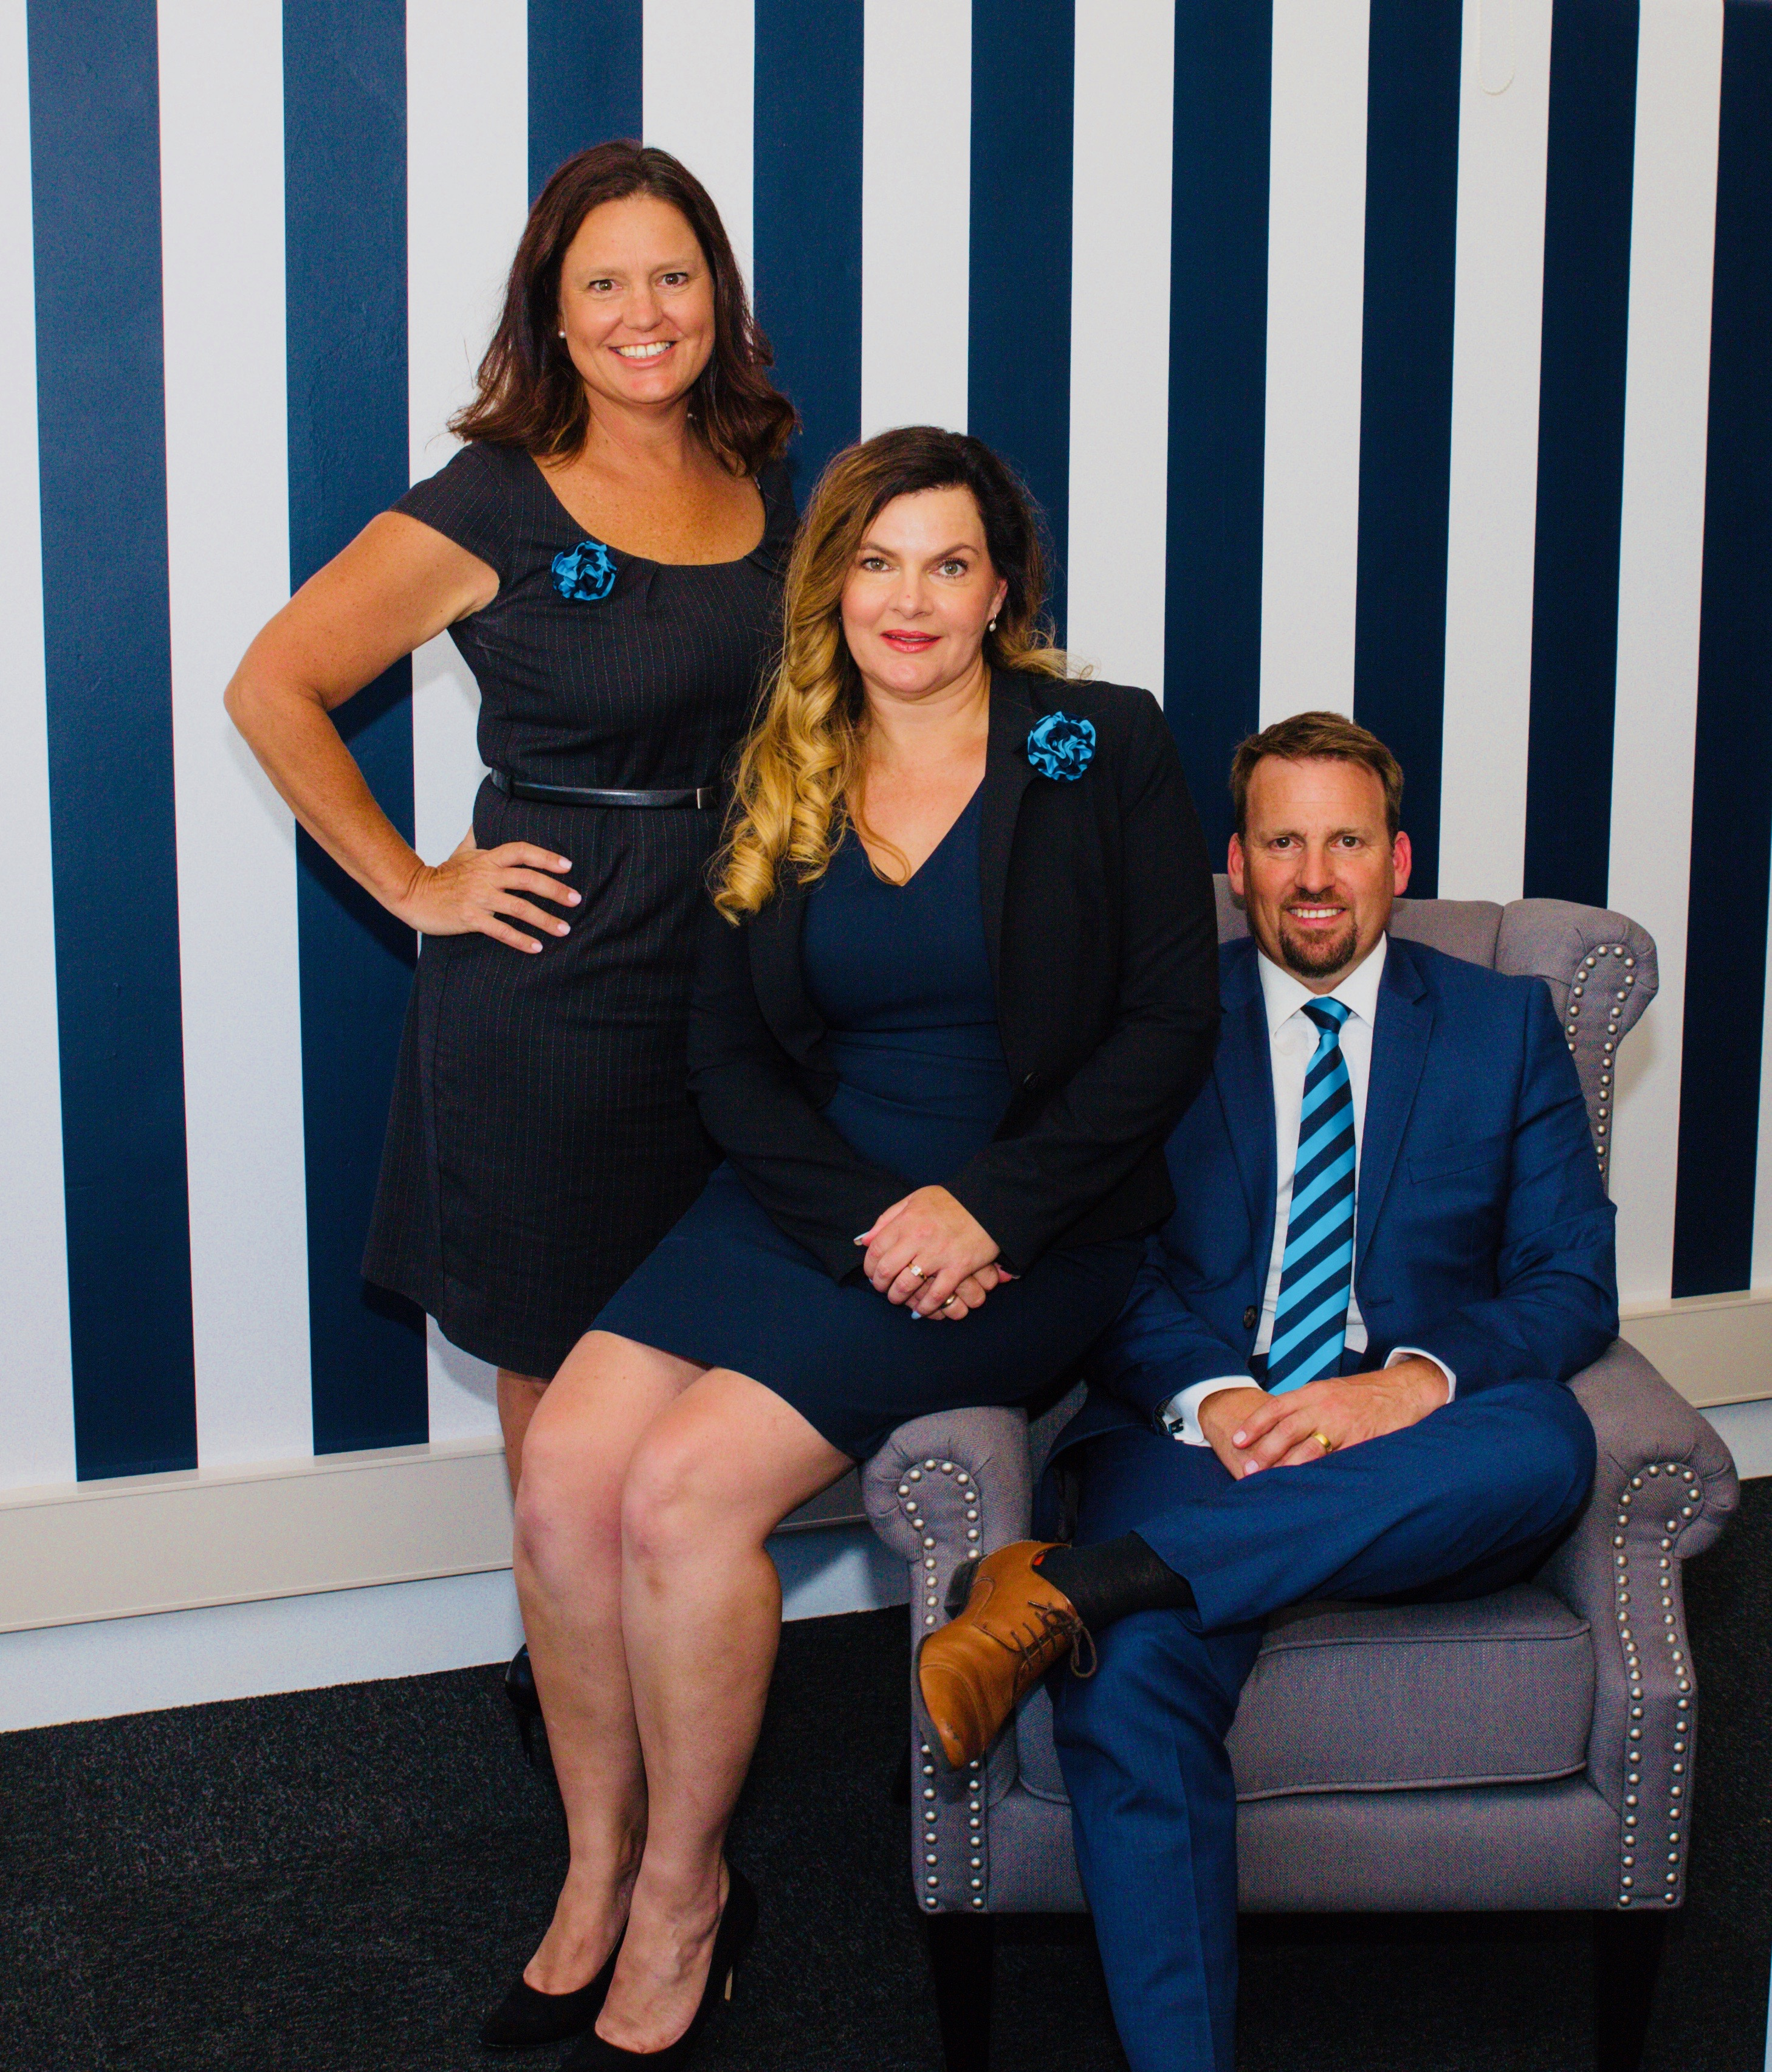 Harcourts Expands into Key Western Australia Locations